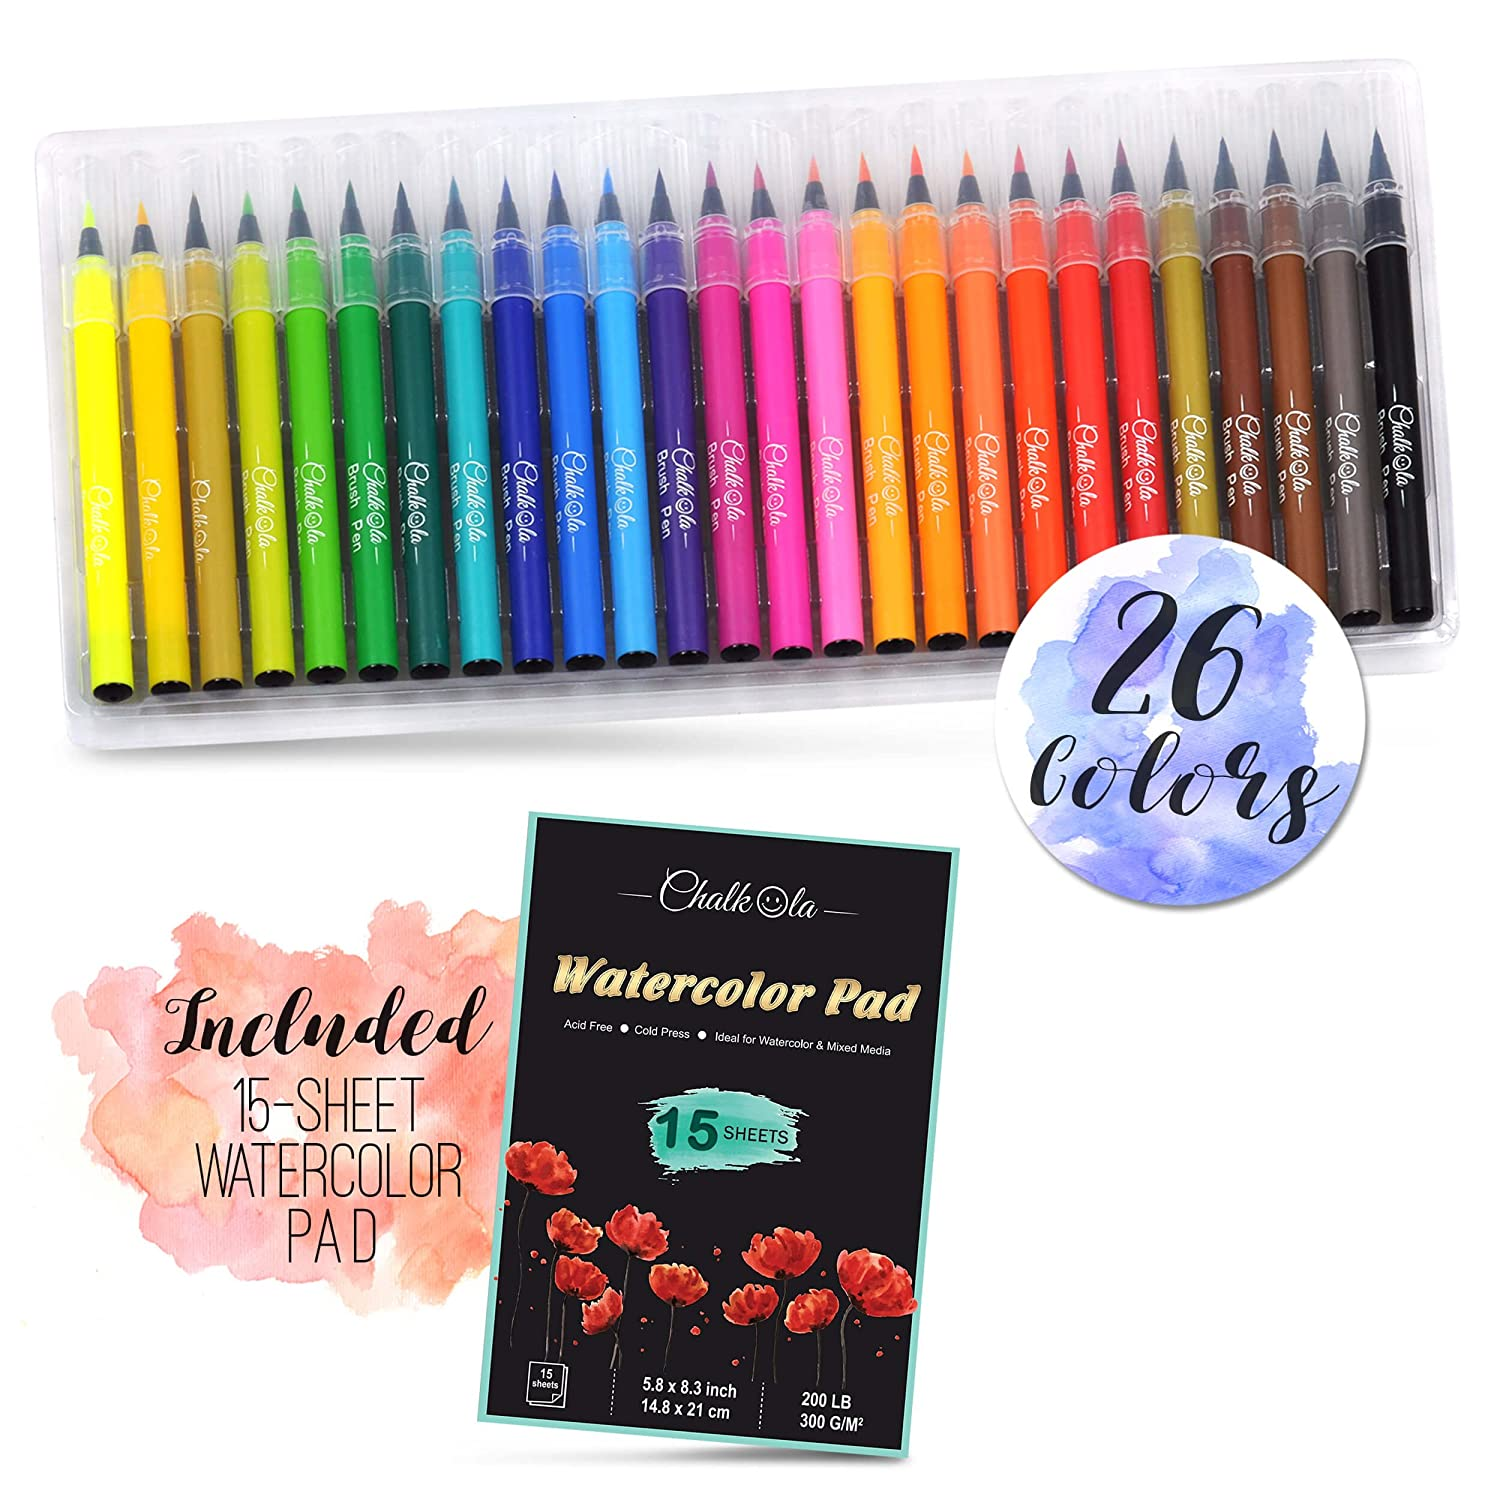 Watercolor Brush Pens | Set of 26 with 15-Sheet Paper Painting Pad | Water Color Paint Markers with Real Flexible Soft Nibs | 100% Non-Toxic | Premium Paint Pens for Kids and Adults by Chalkola 4336949597